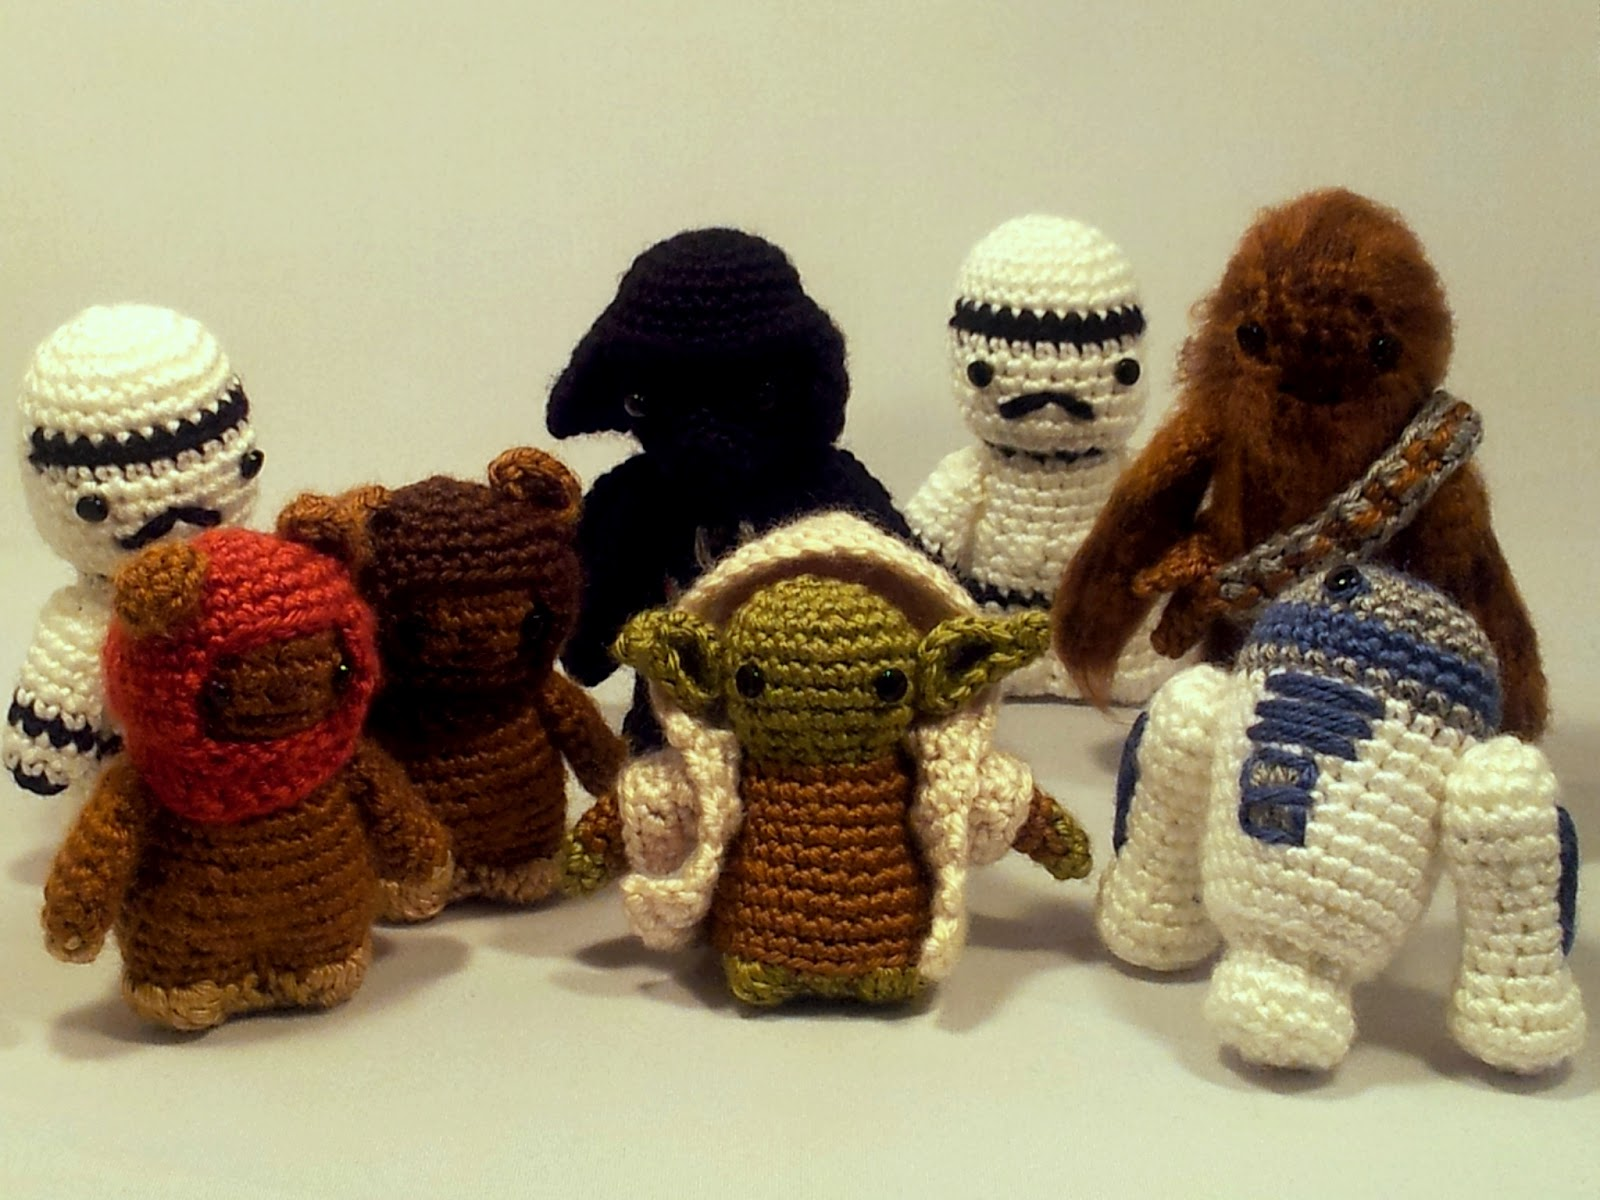 Amigurumi Star Wars Patterns : Yarrhooked!: star wars amigurumi!